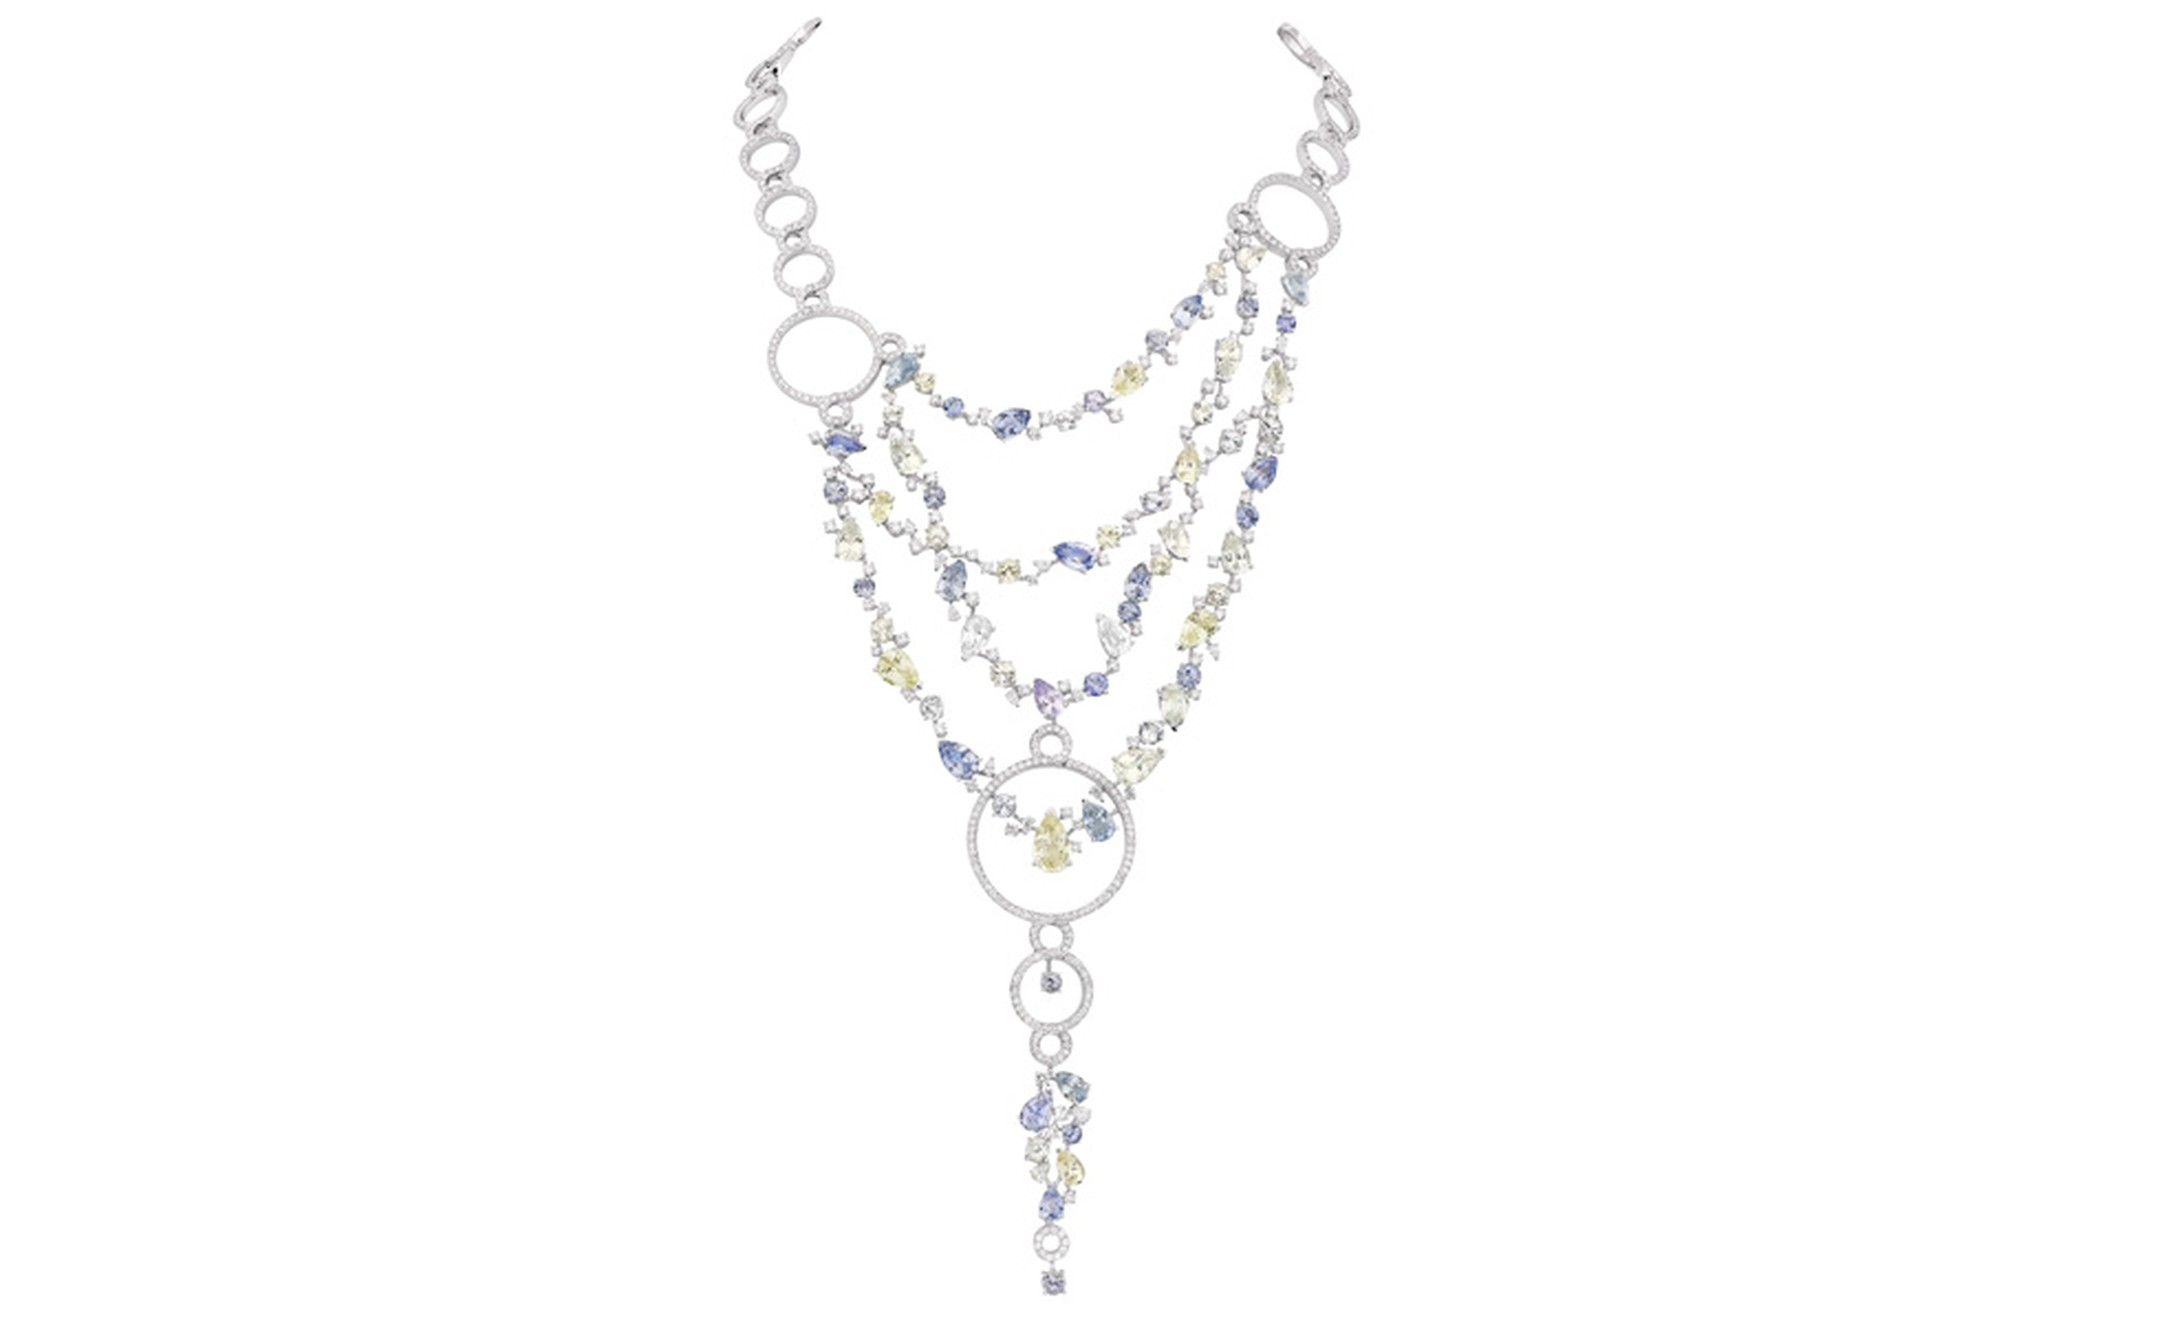 Chanel's Vénitienne necklace with multi-coloured sapphires and diamonds is inspired by Venice and its motifs. POA